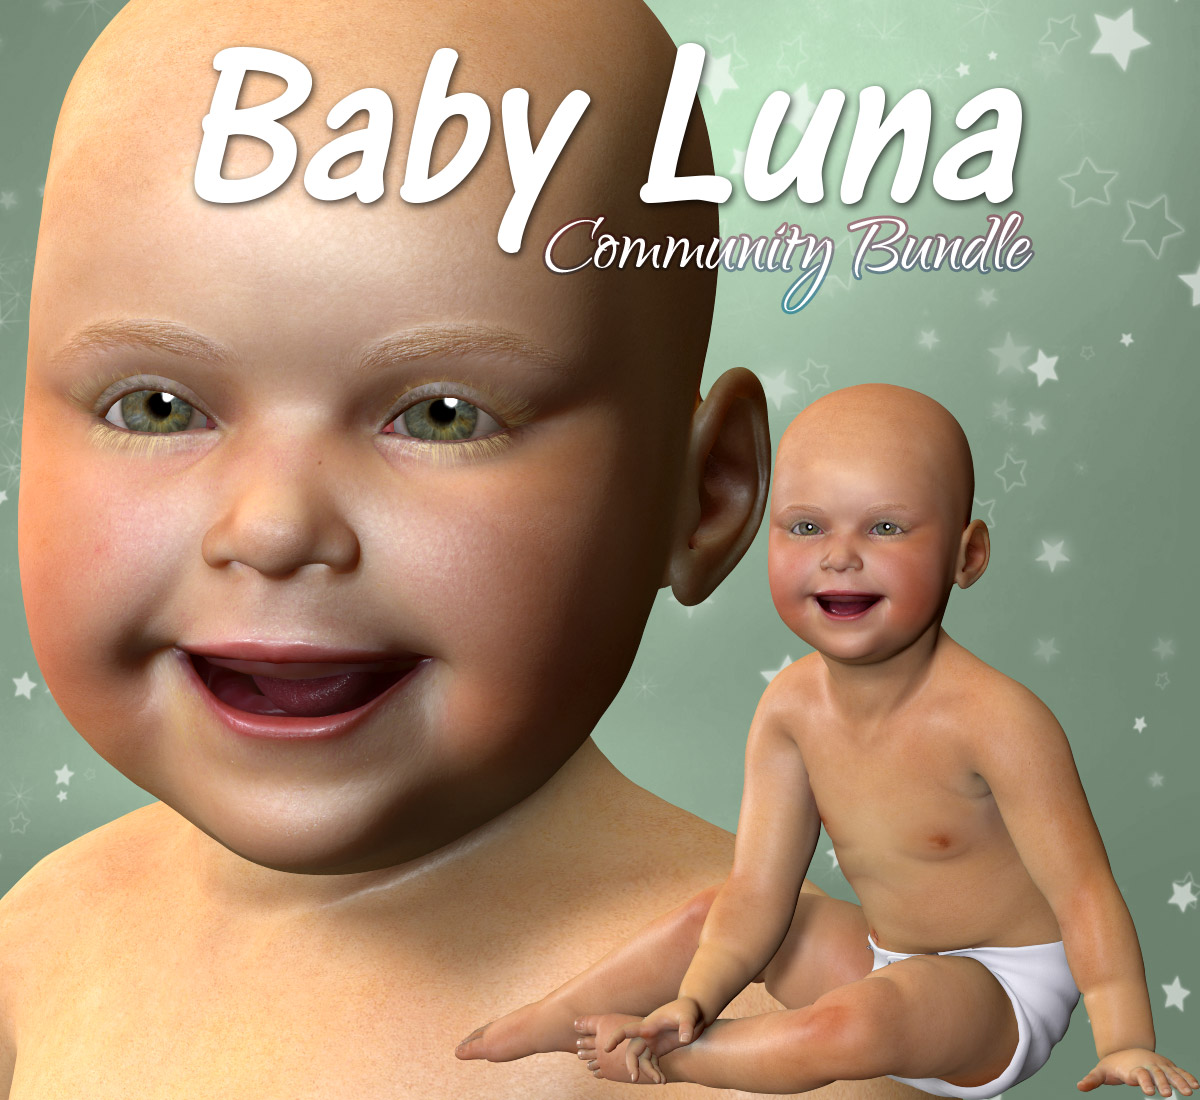 Baby Luna Community Bundle